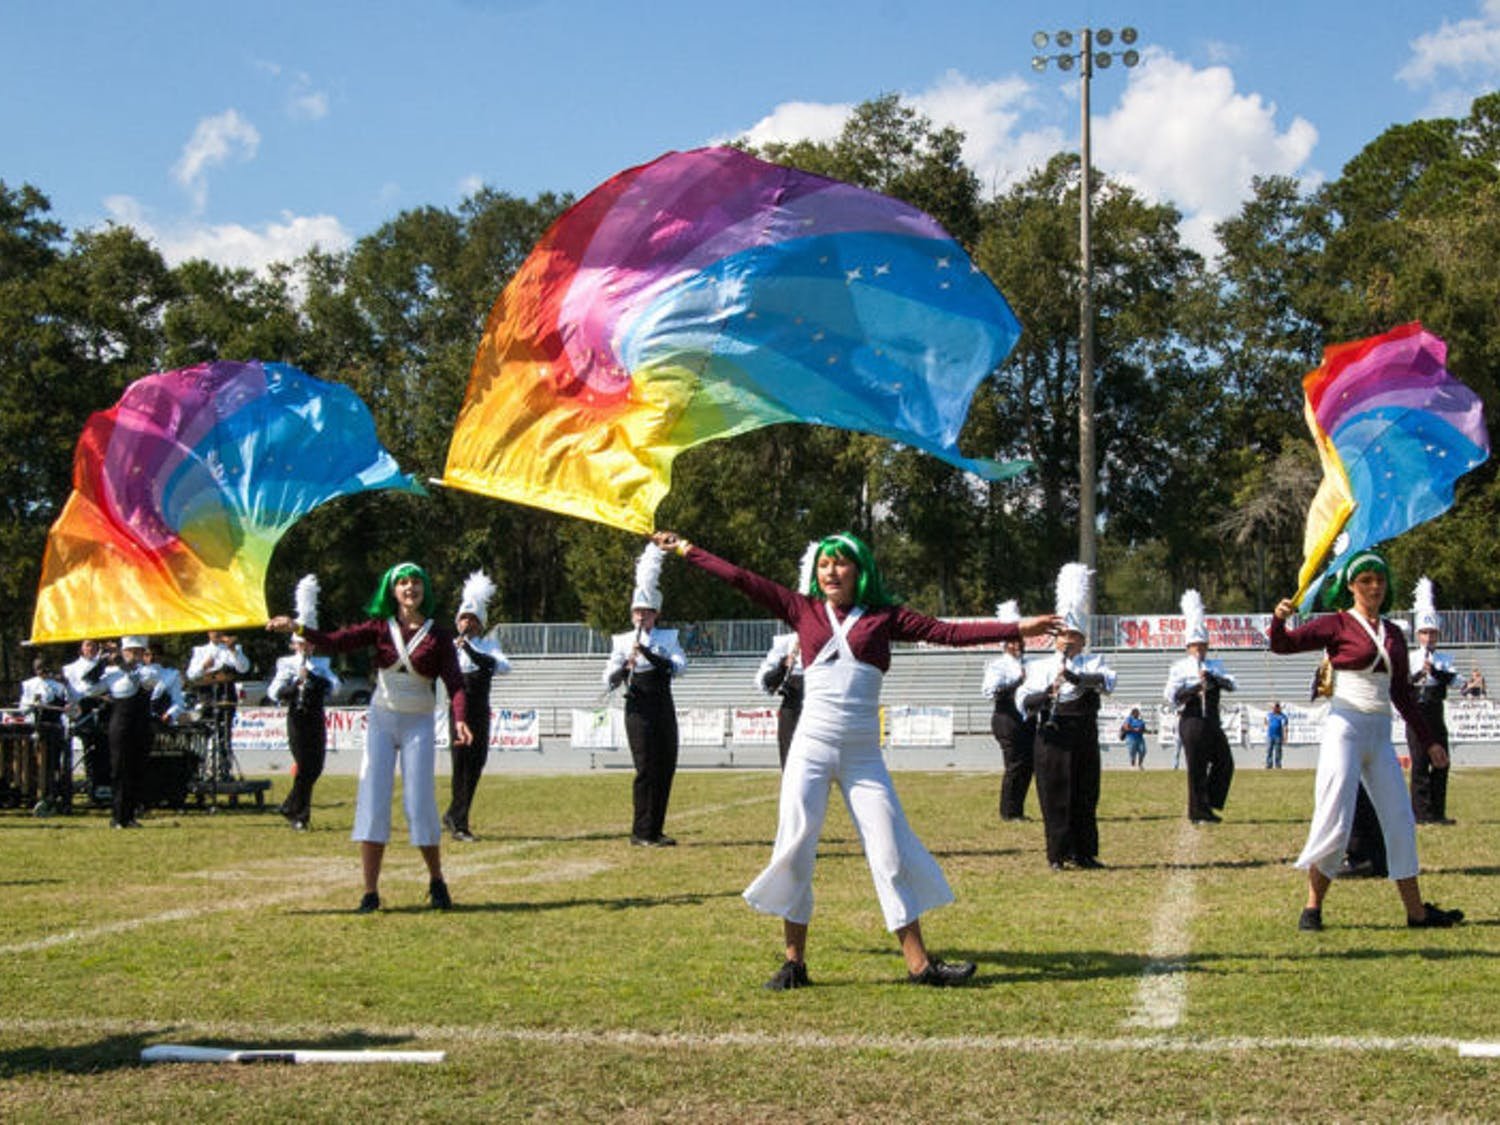 The P. K. Yonge Developmental Research School band performs at the Southern Showcase of Champions Marching Band Invitational. A.D. Nease finished in first place, and F.W. Buchholz finished in second.